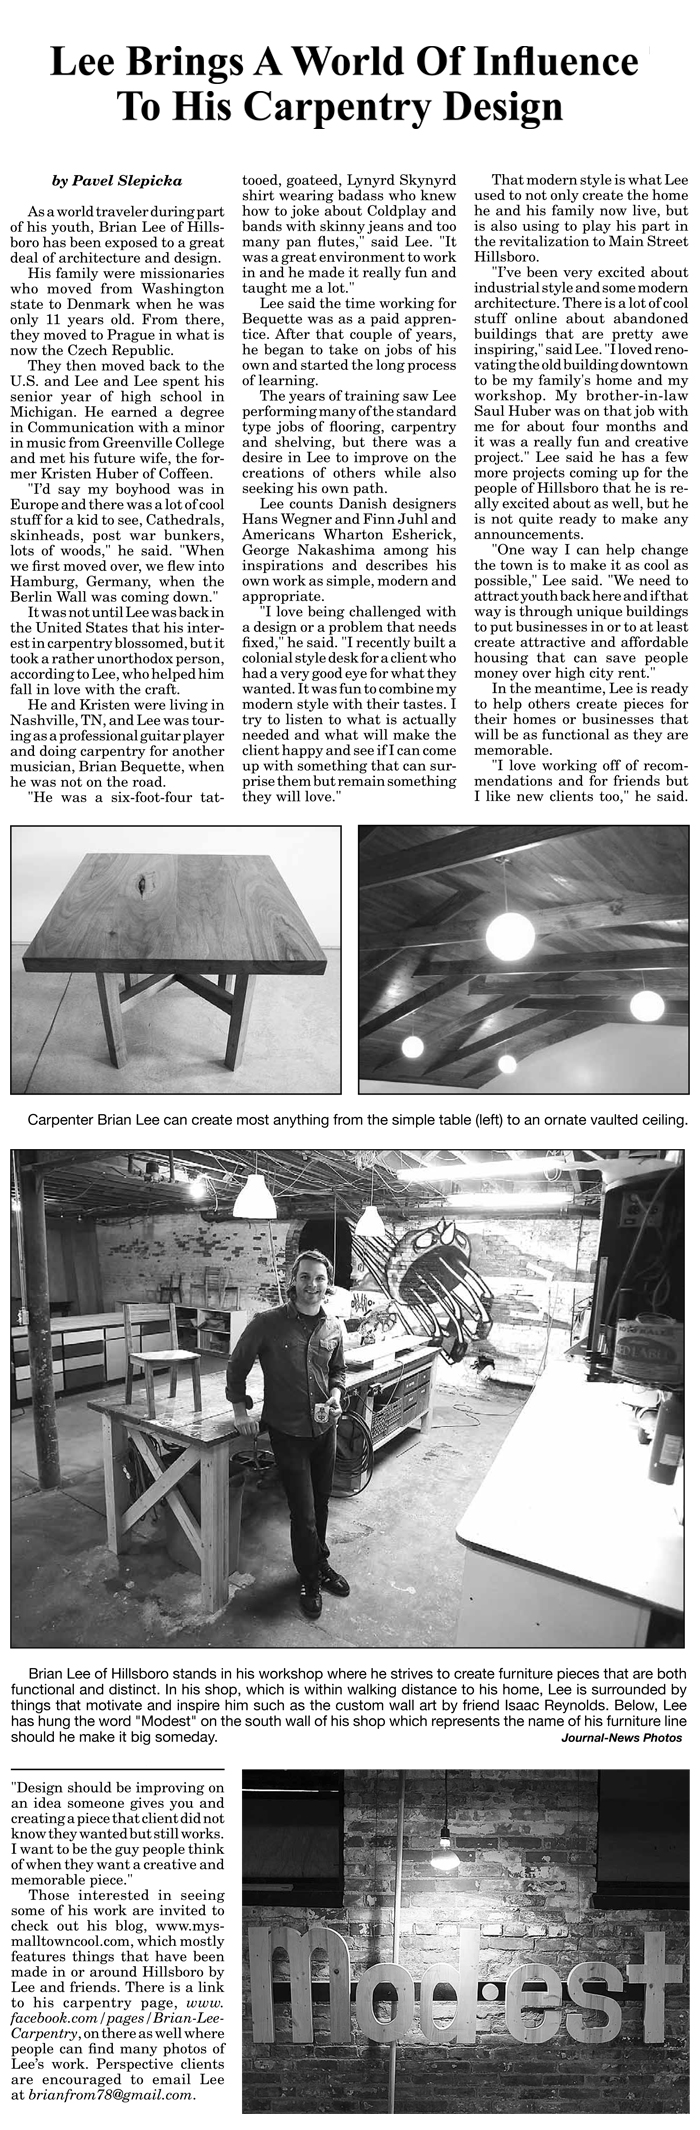 Lee-Carpentry-Article